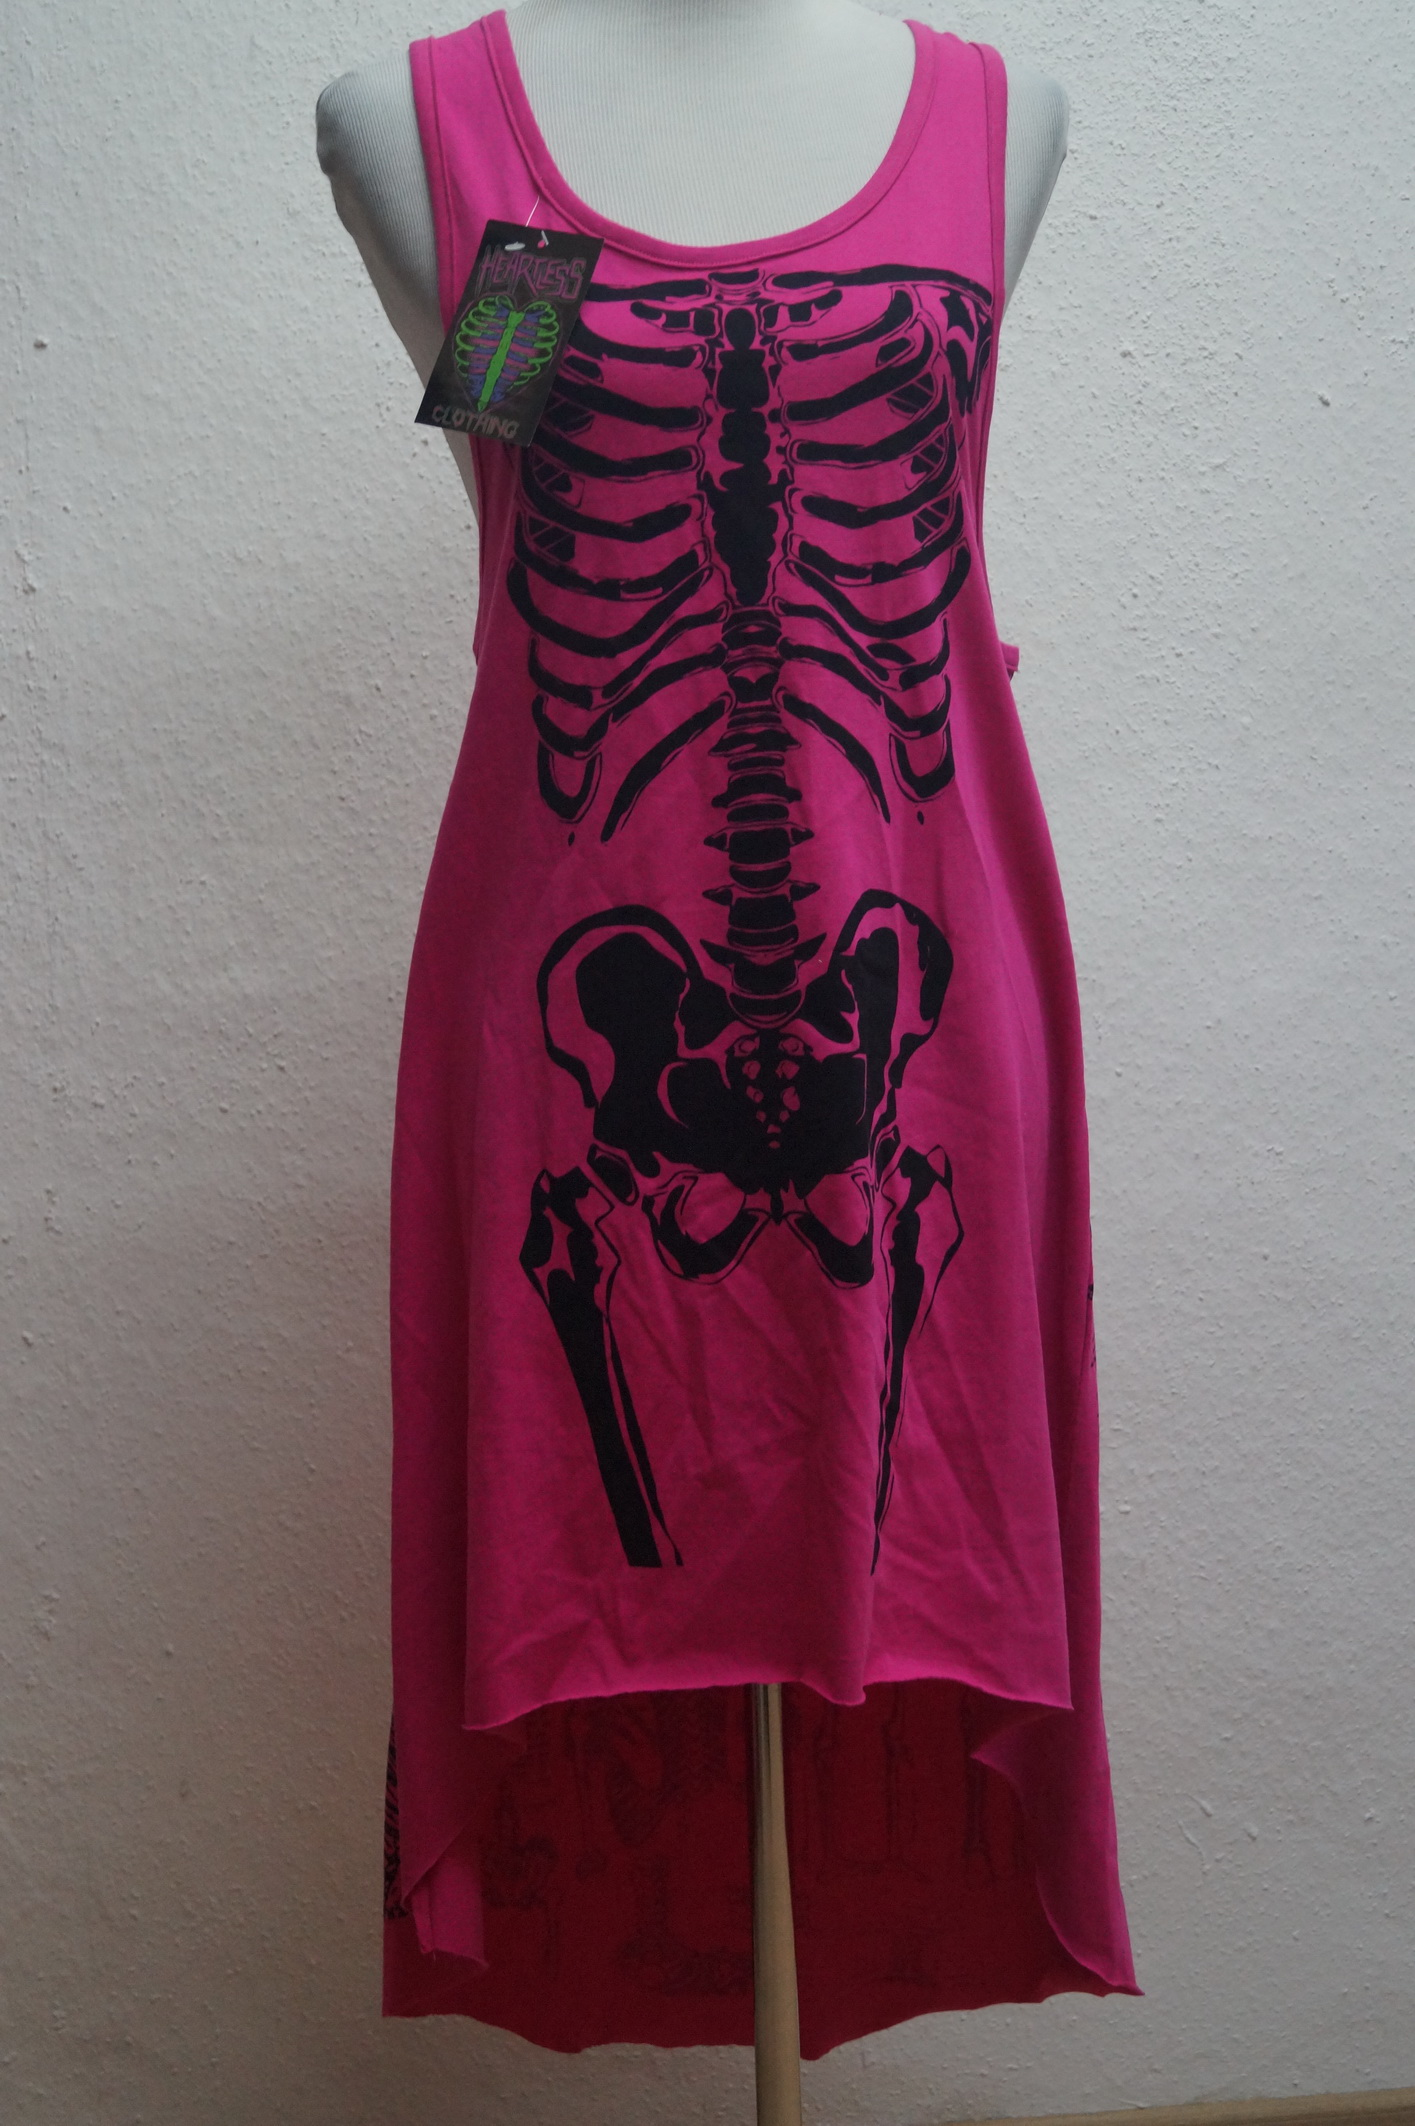 Sommer-Kleid Heartless Longshirt Tunika Pink Applikation Skelett Bones Gr.S,M,L